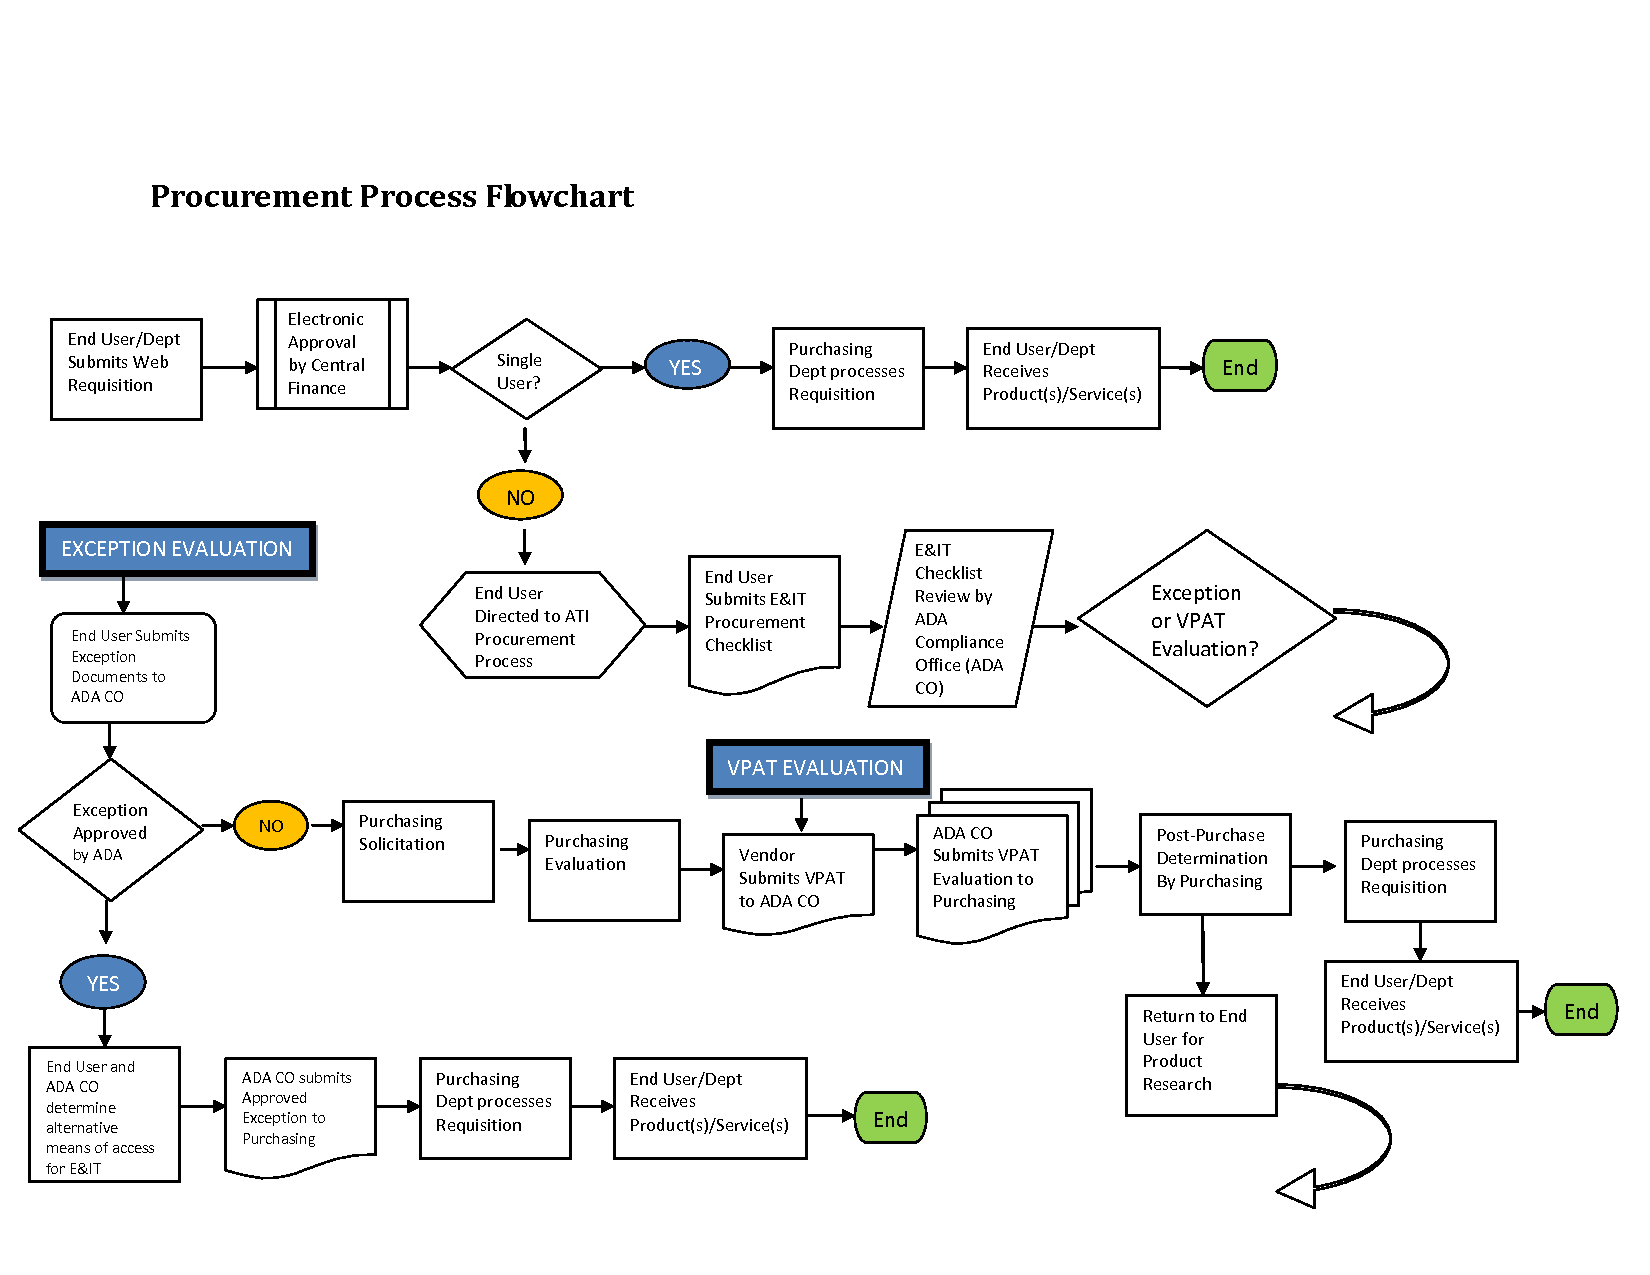 12 Awesome Procurement Process Flow Chart Template Images  Procedure Flow Chart Template